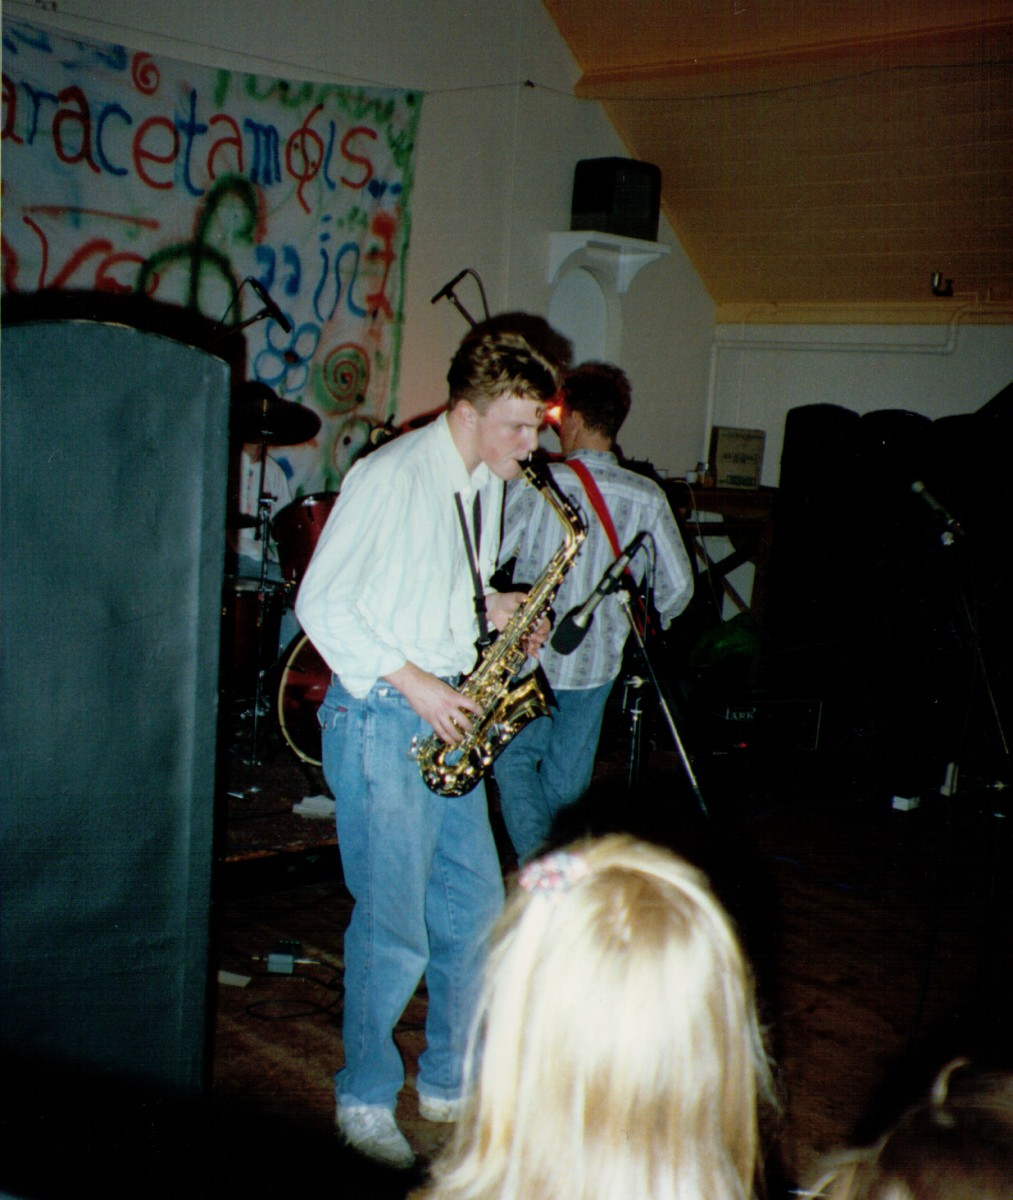 Matt on Sax - no idea why - at the Paracetamols gig at Felixstowe